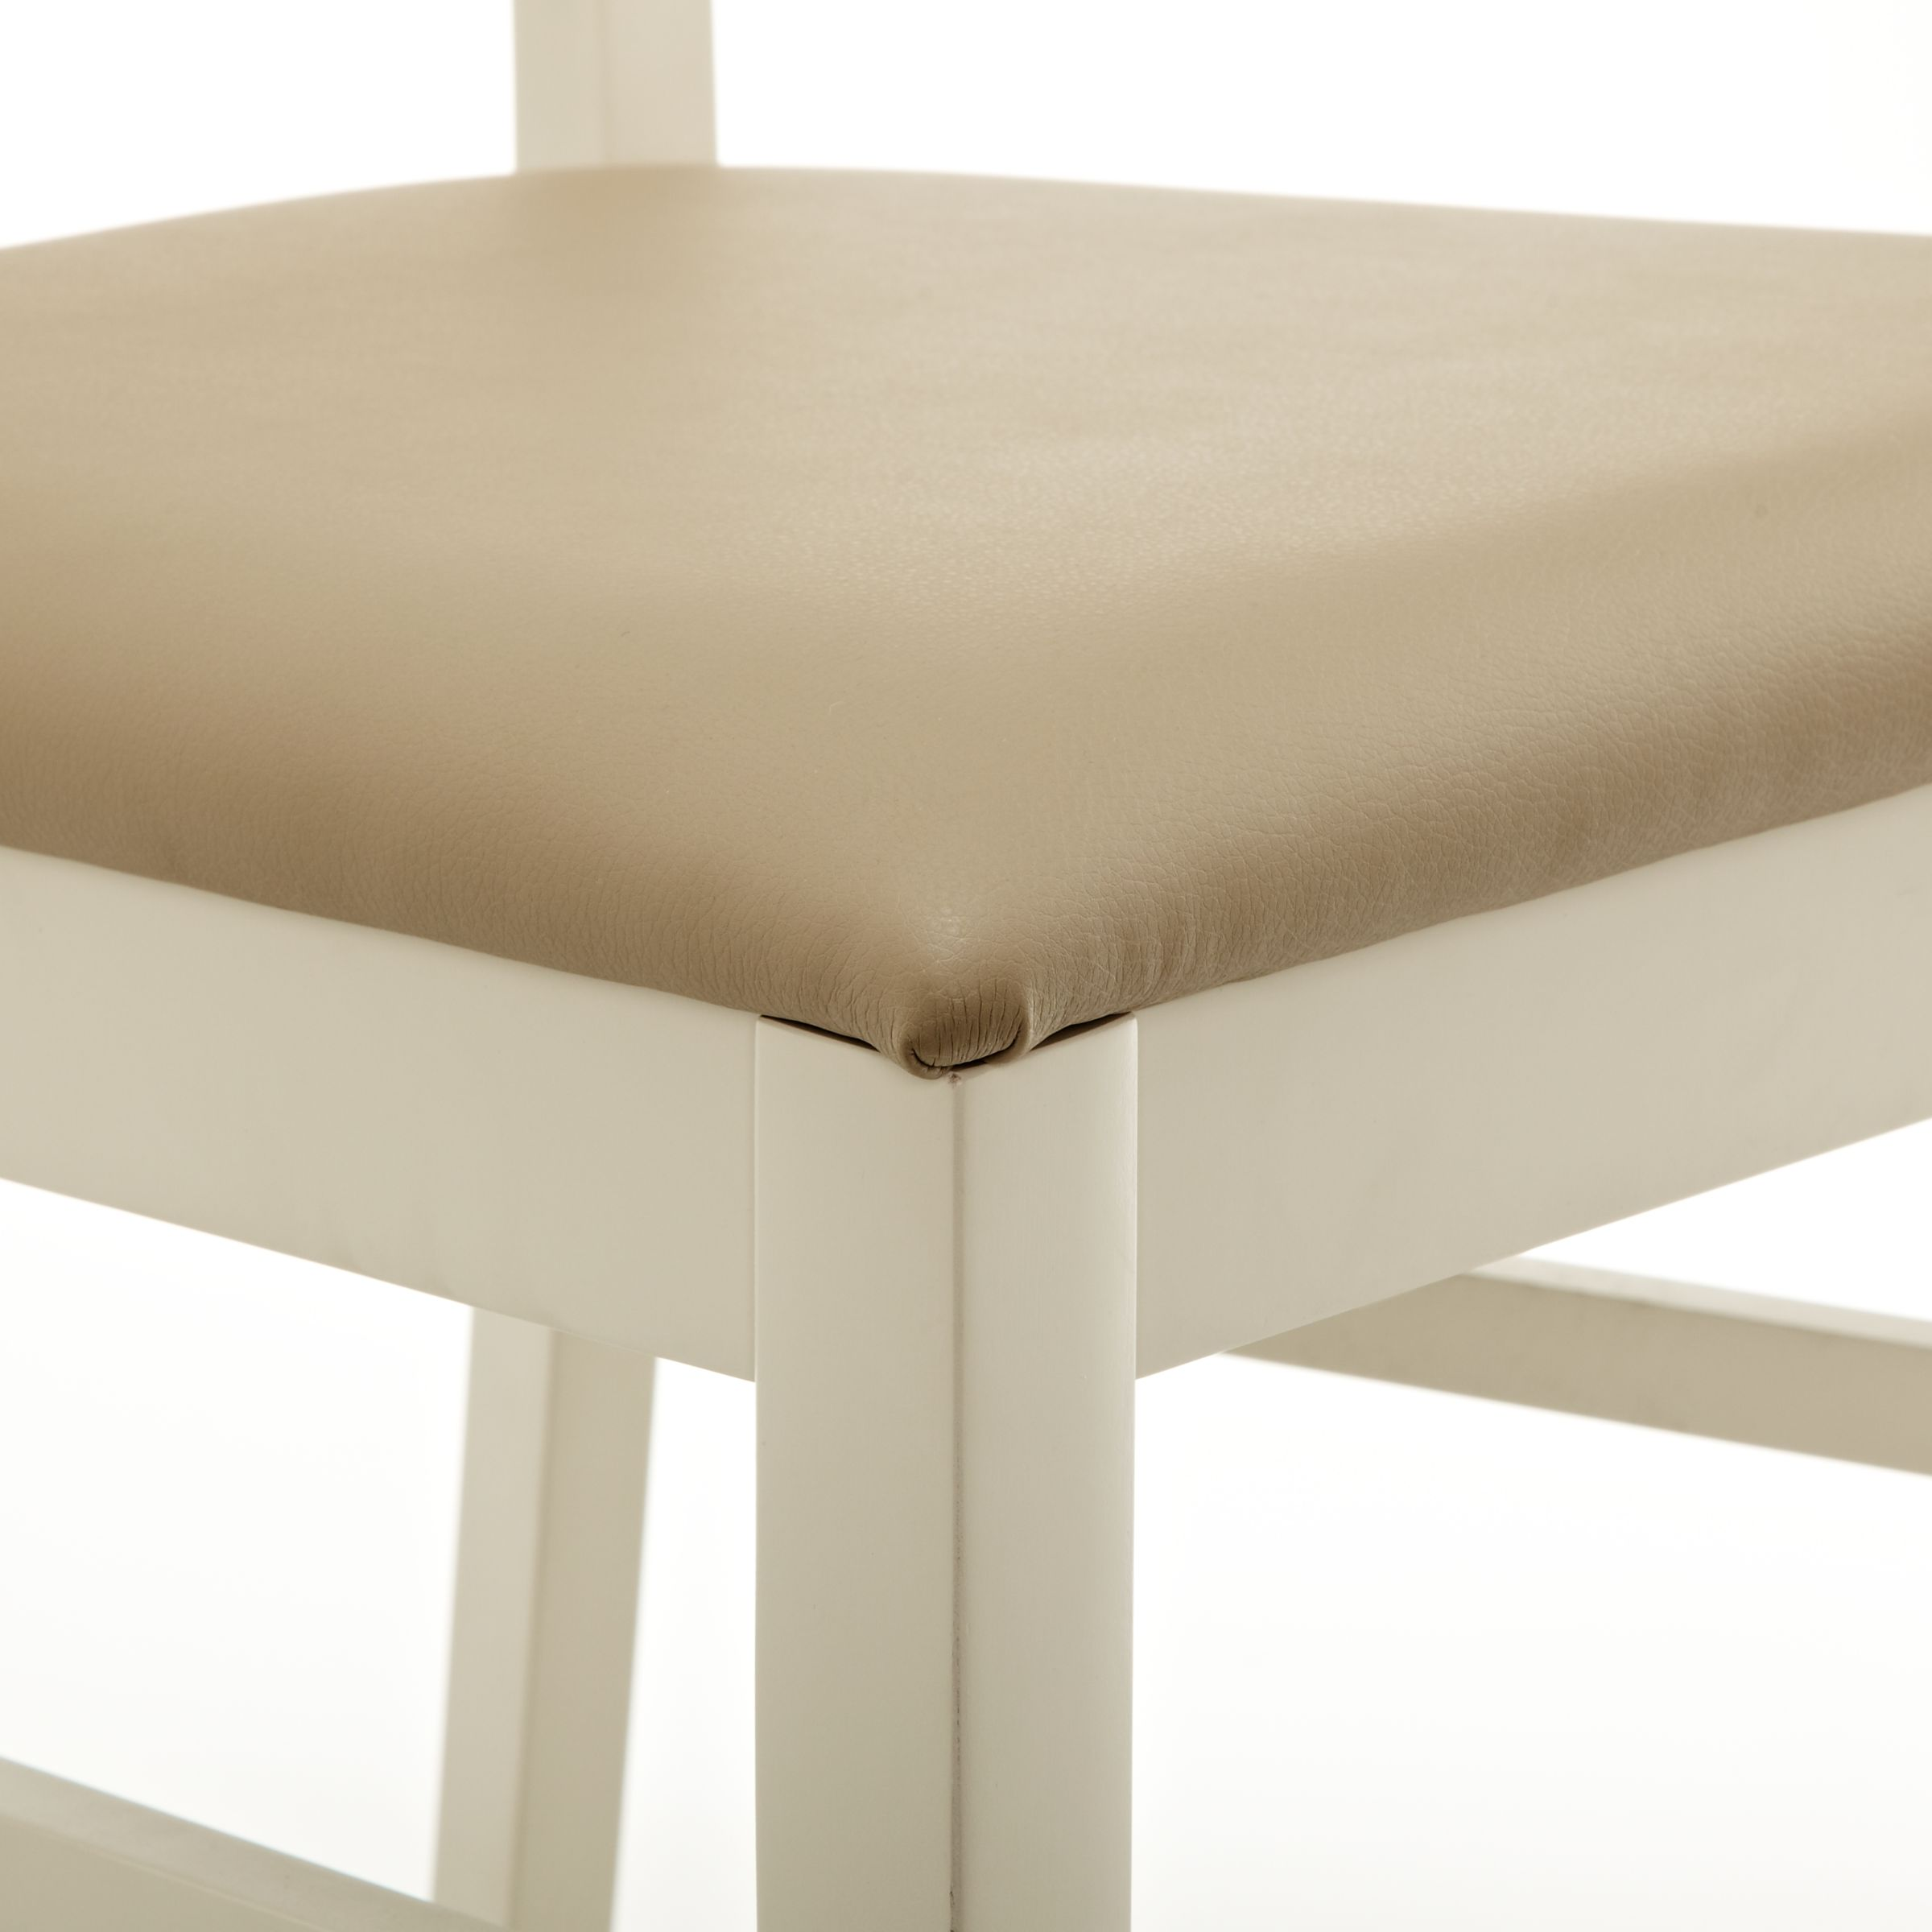 alba slat back dining chair cover rental kitchener john lewis and partners at